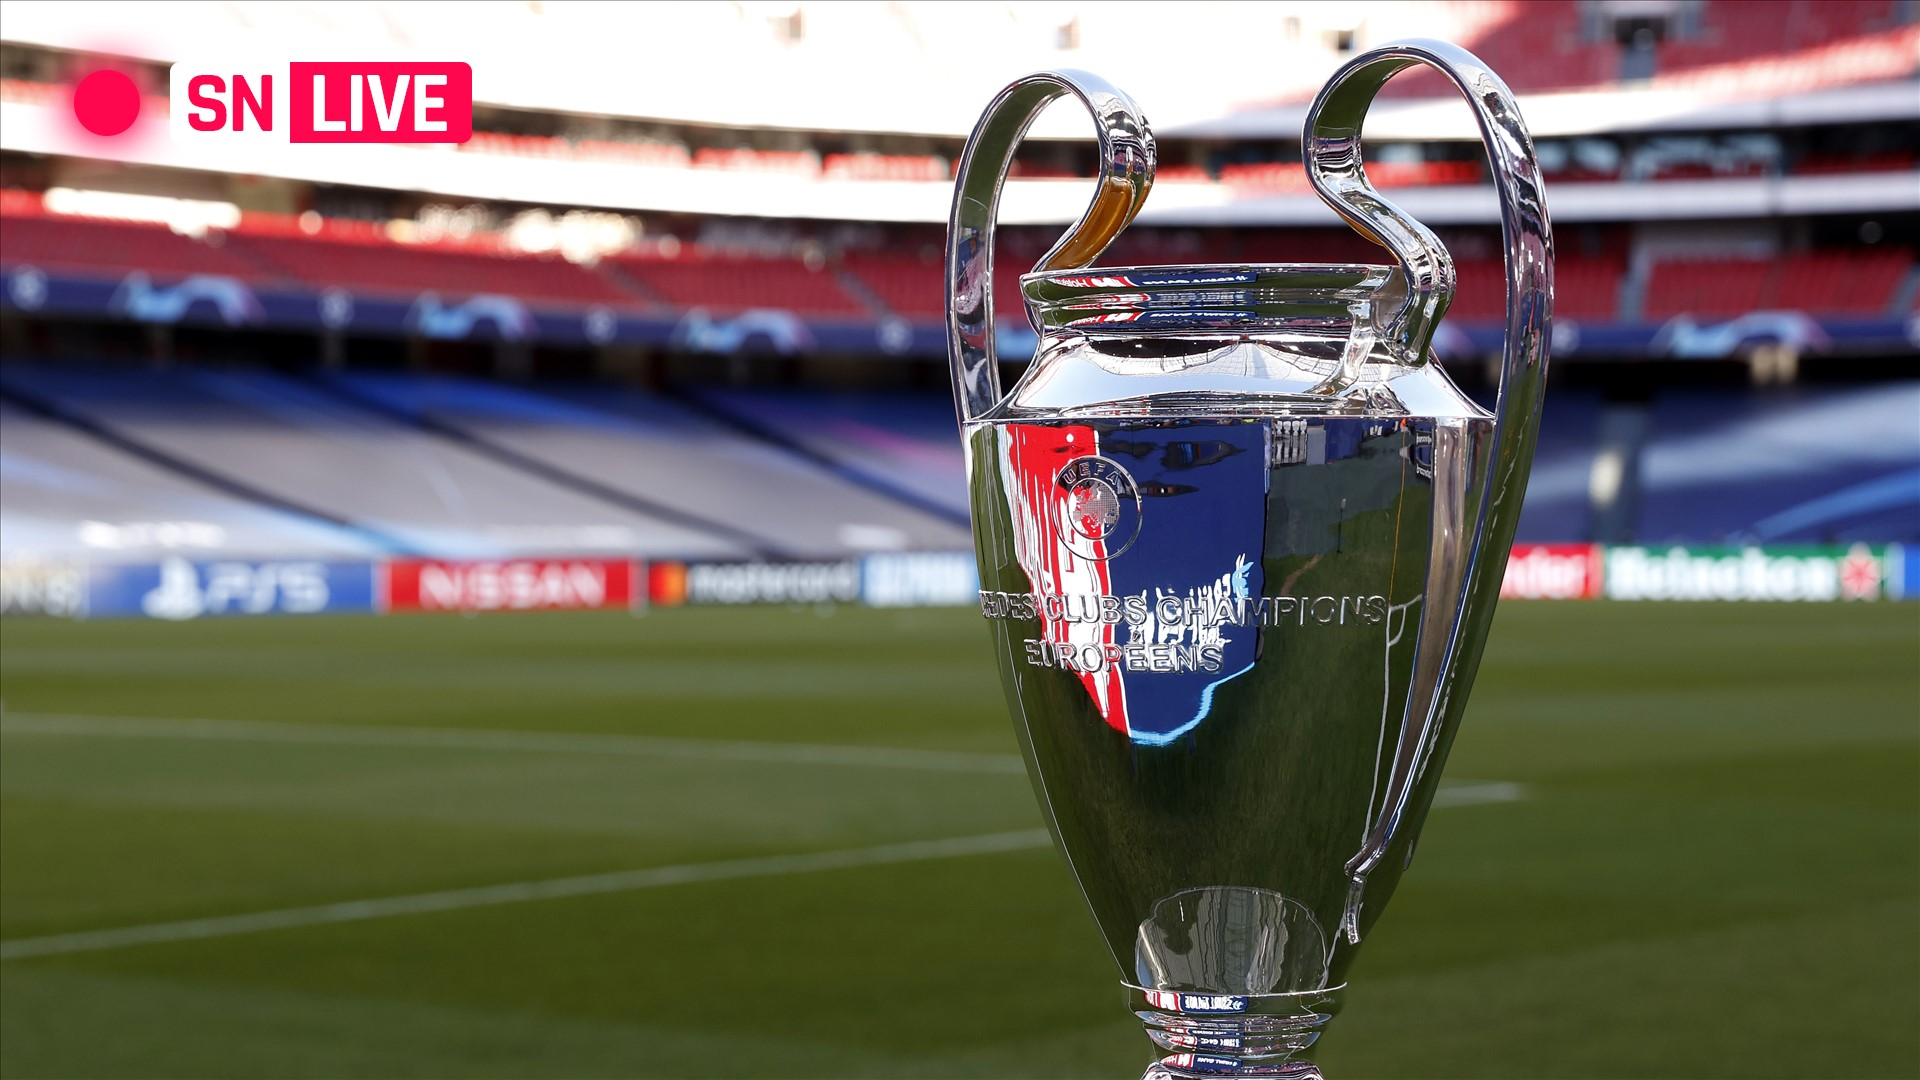 psg vs bayern live score updates highlights from the 2020 uefa champions league final report door 2020 uefa champions league final